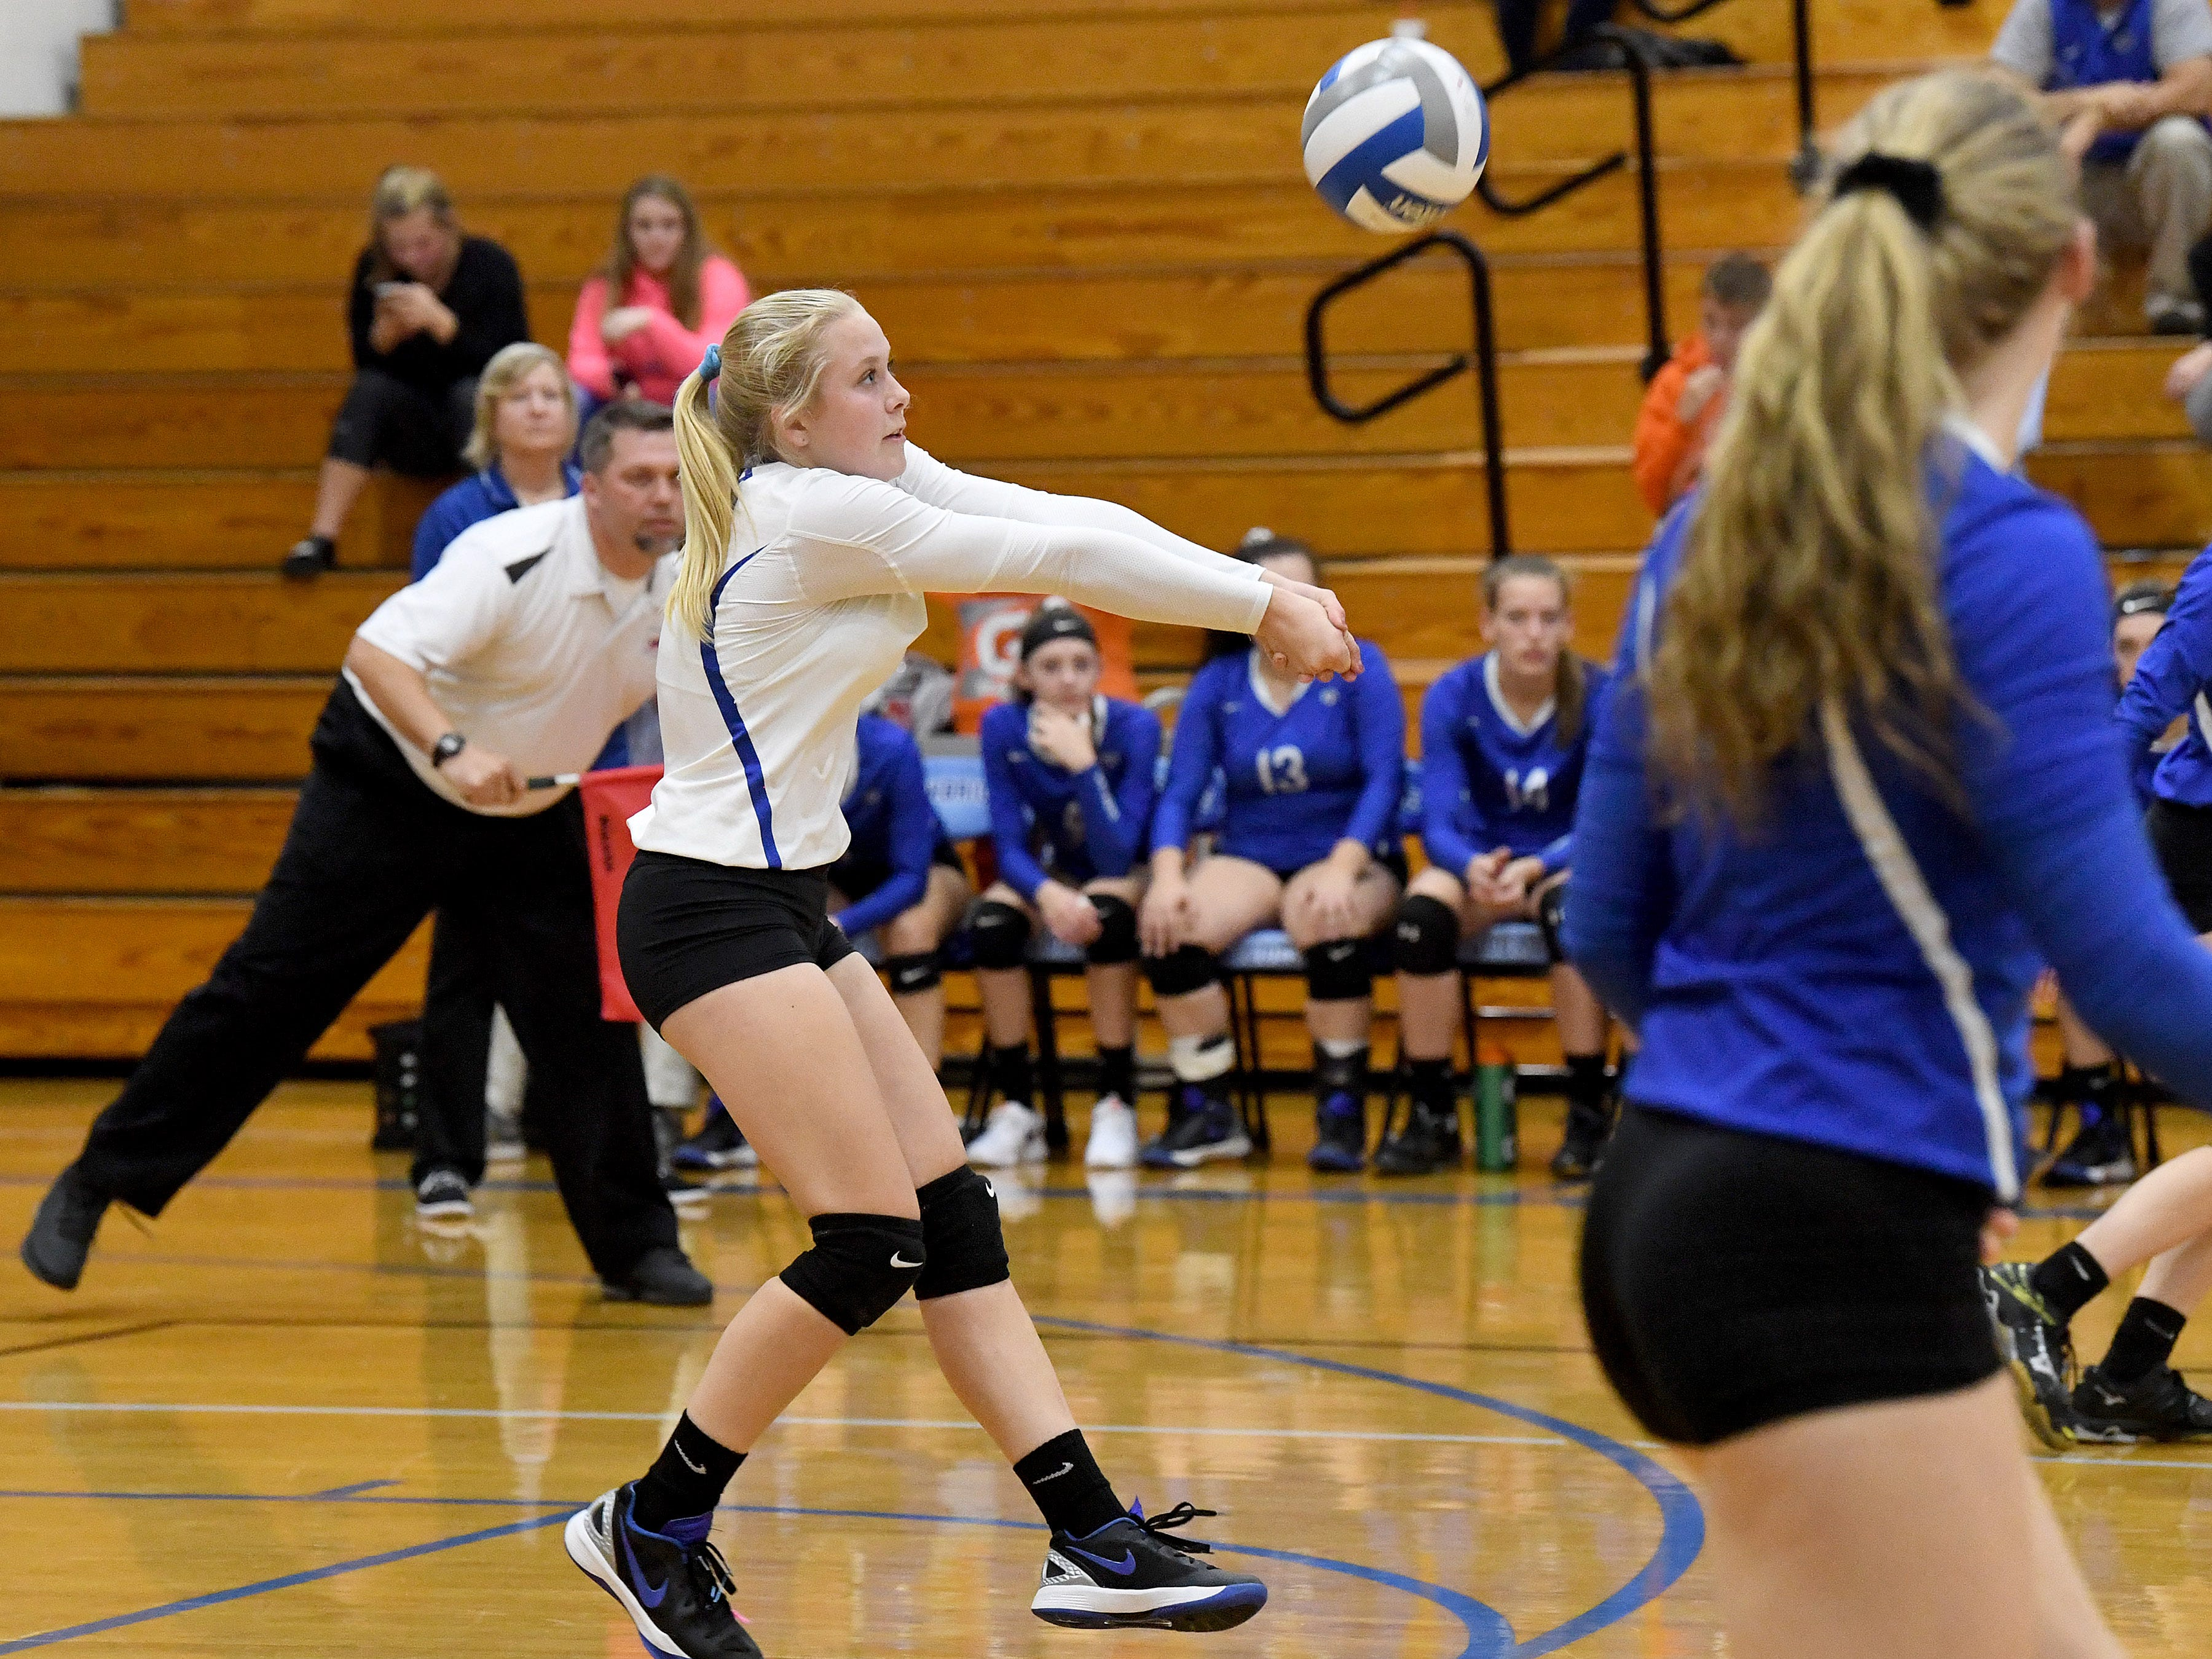 Fort Defiance's Jordan Schulz bumps the ball during a Region 3C semifinal match played in Lexington on Monday, Nov. 5, 2018.